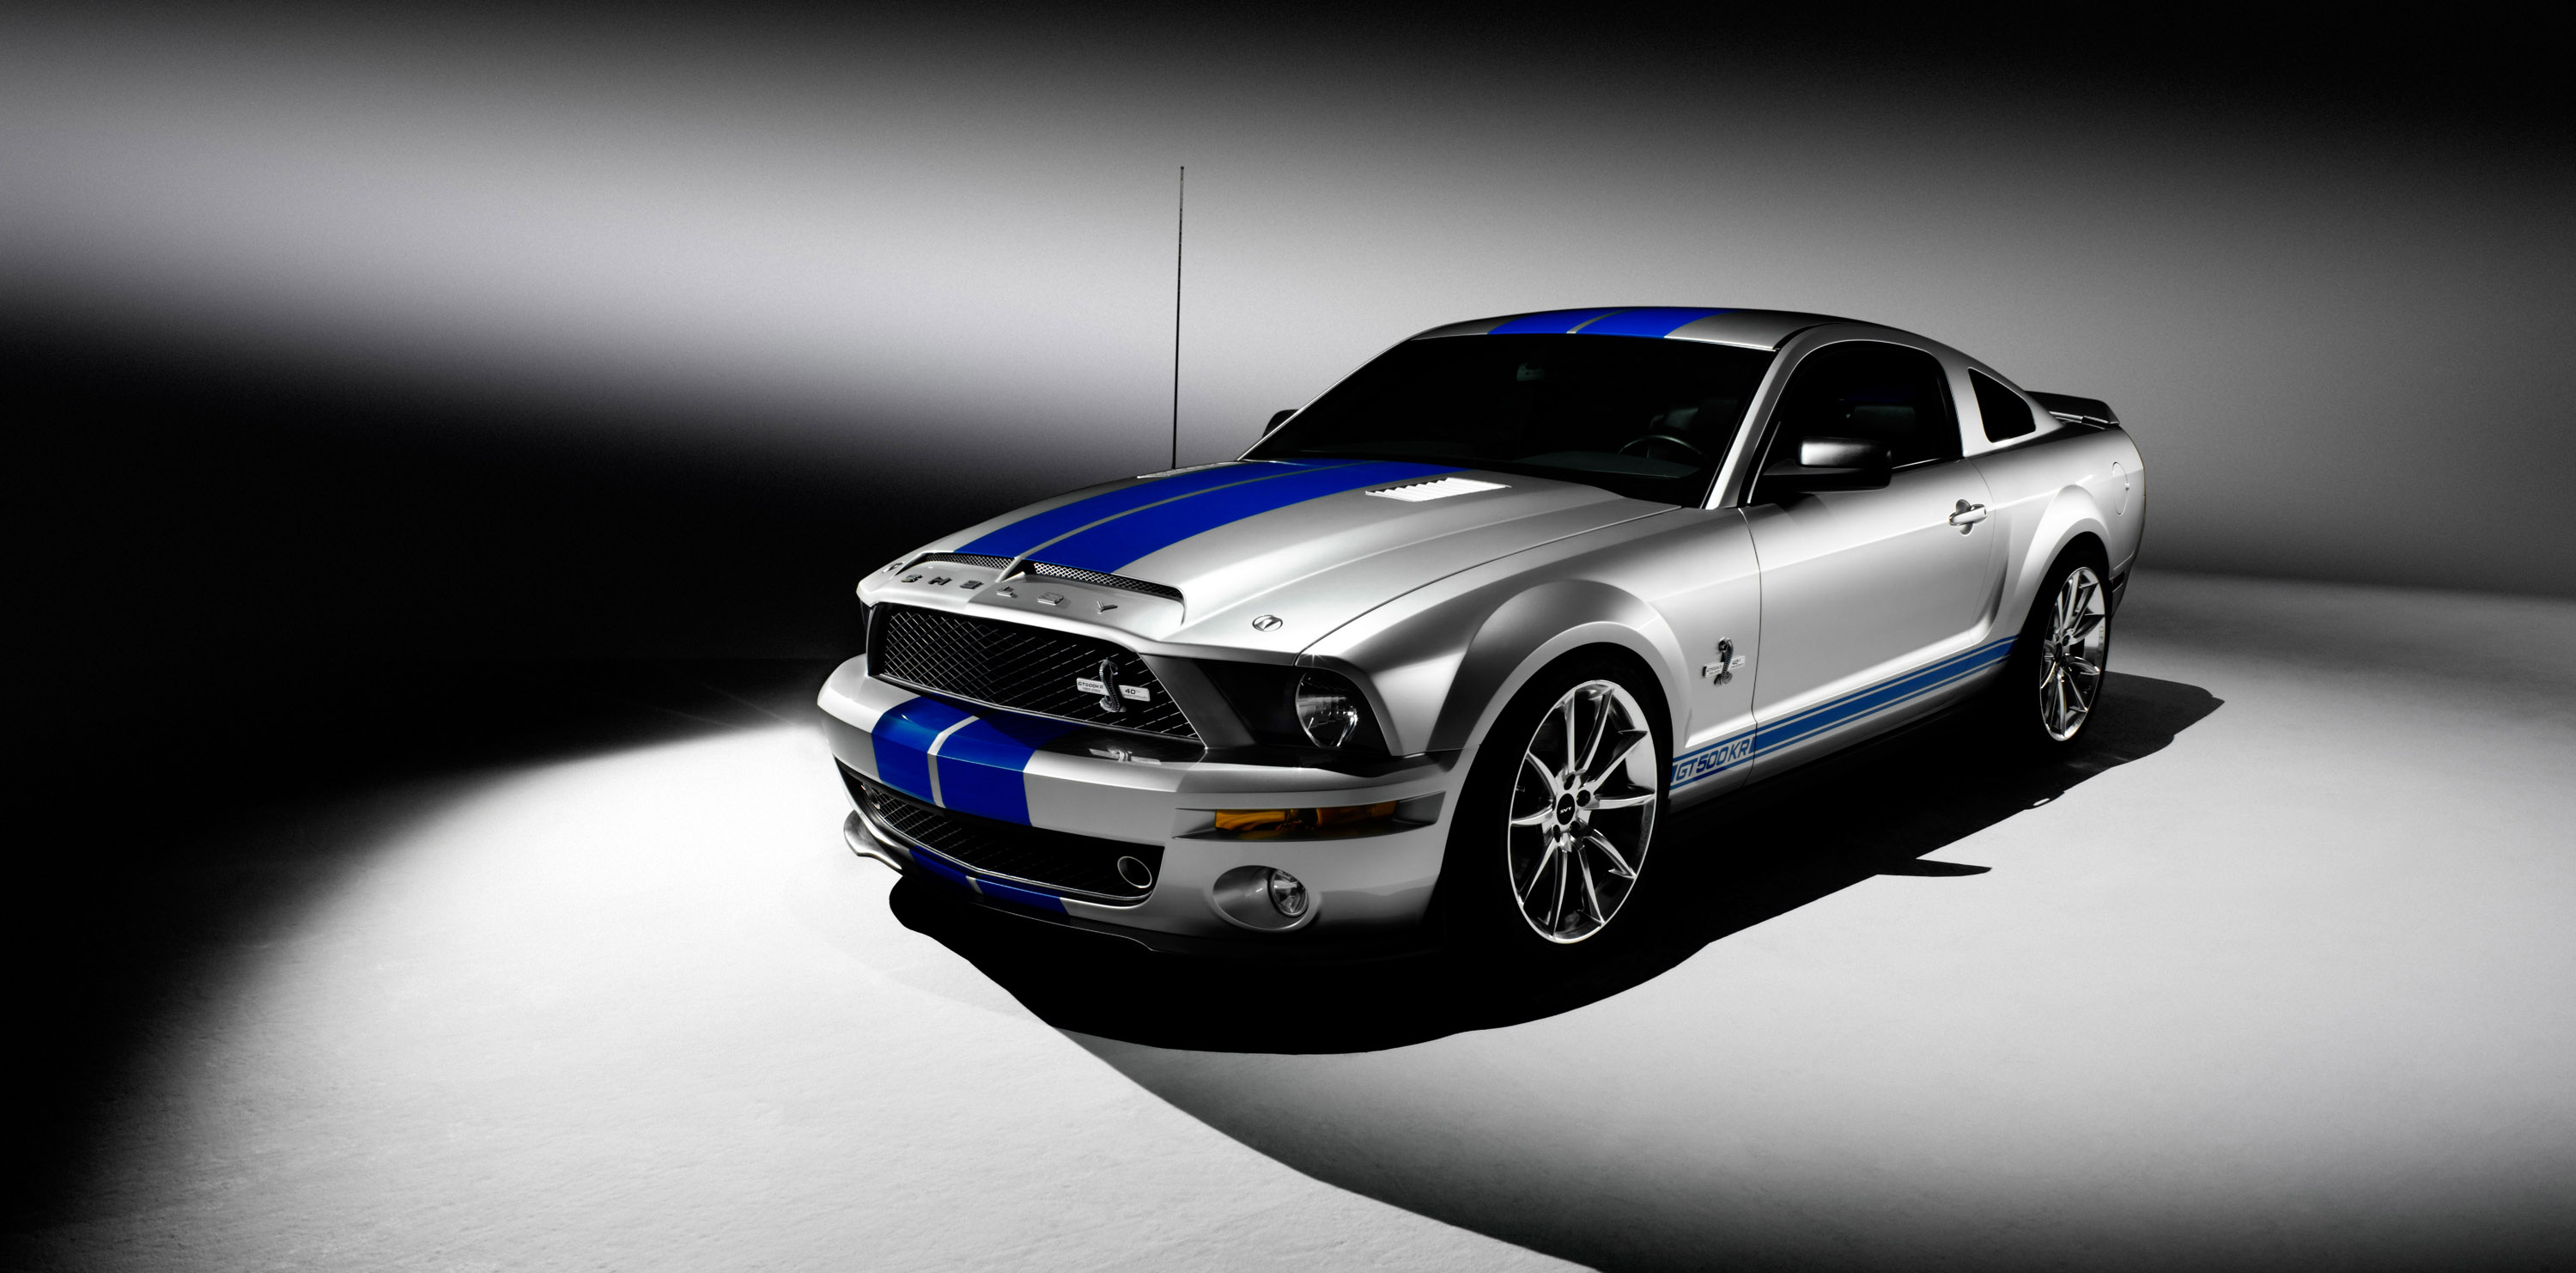 Cars vehicles ford mustang ford shelby